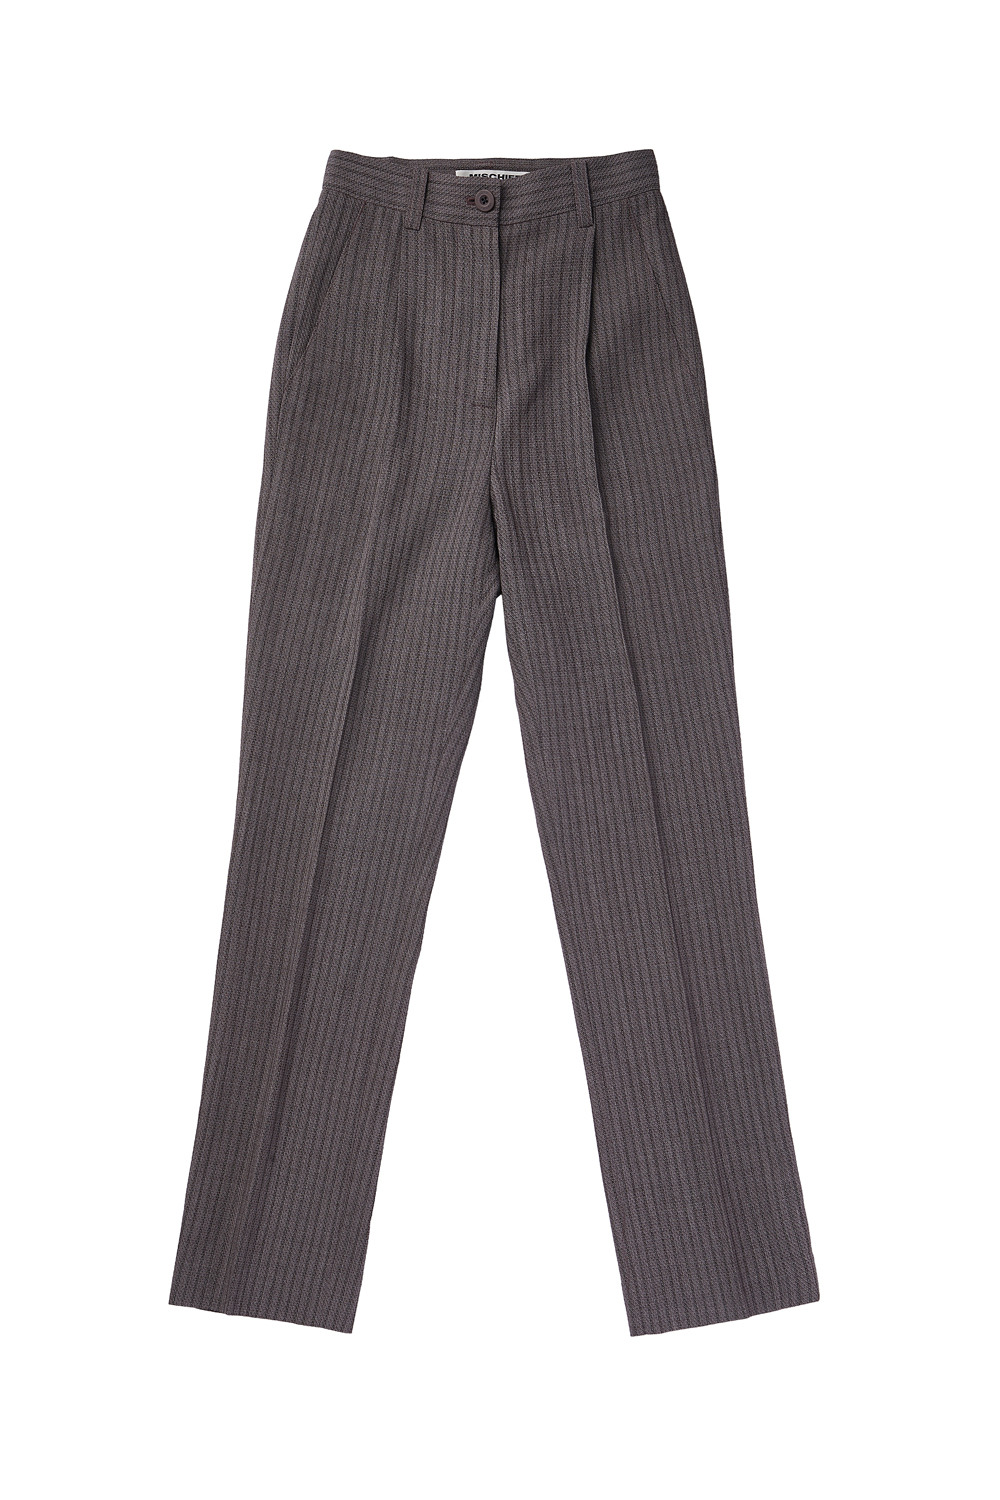 STRIPED LONG SUIT PANTS_pink/gray